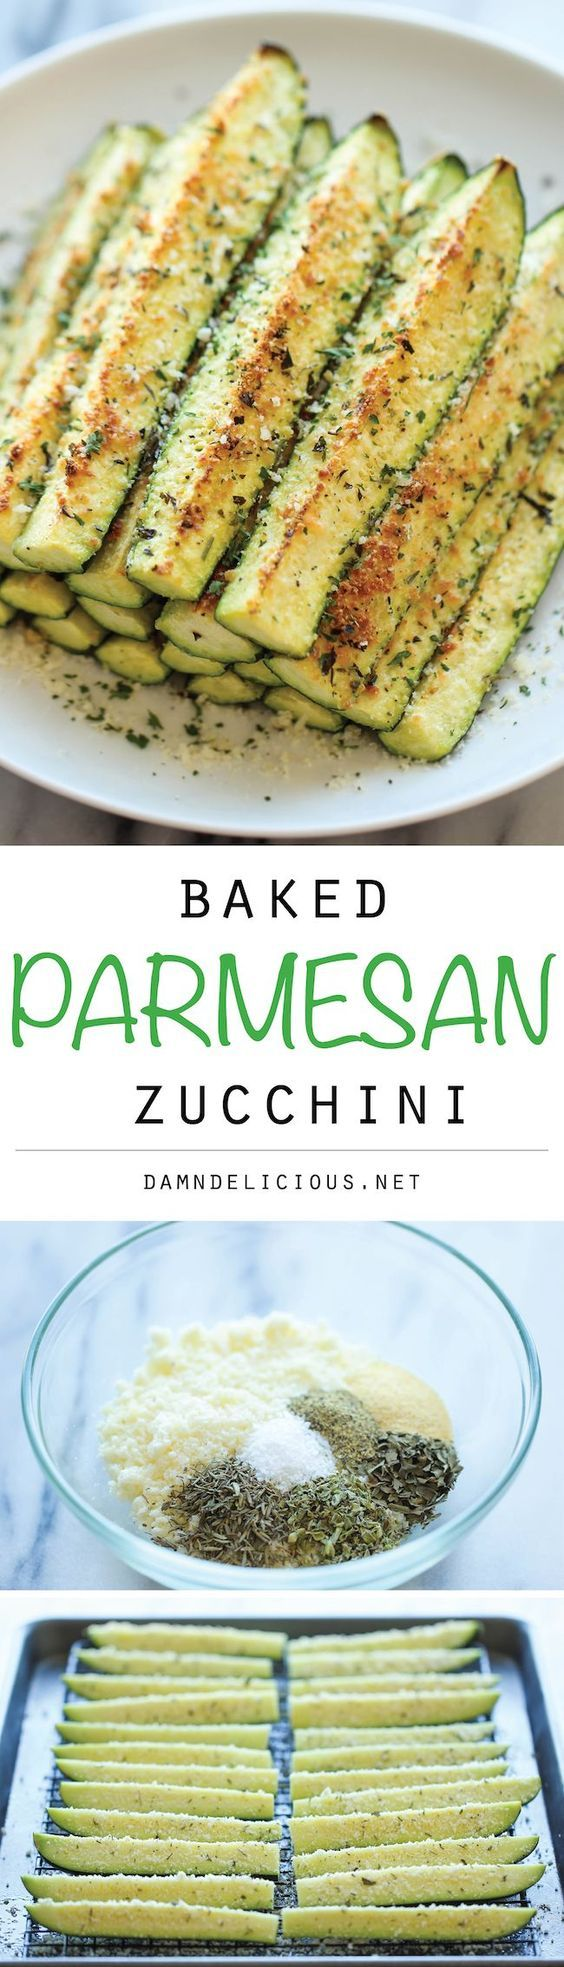 Baked Parmesan Zucchini Recipe - Damn Delicious